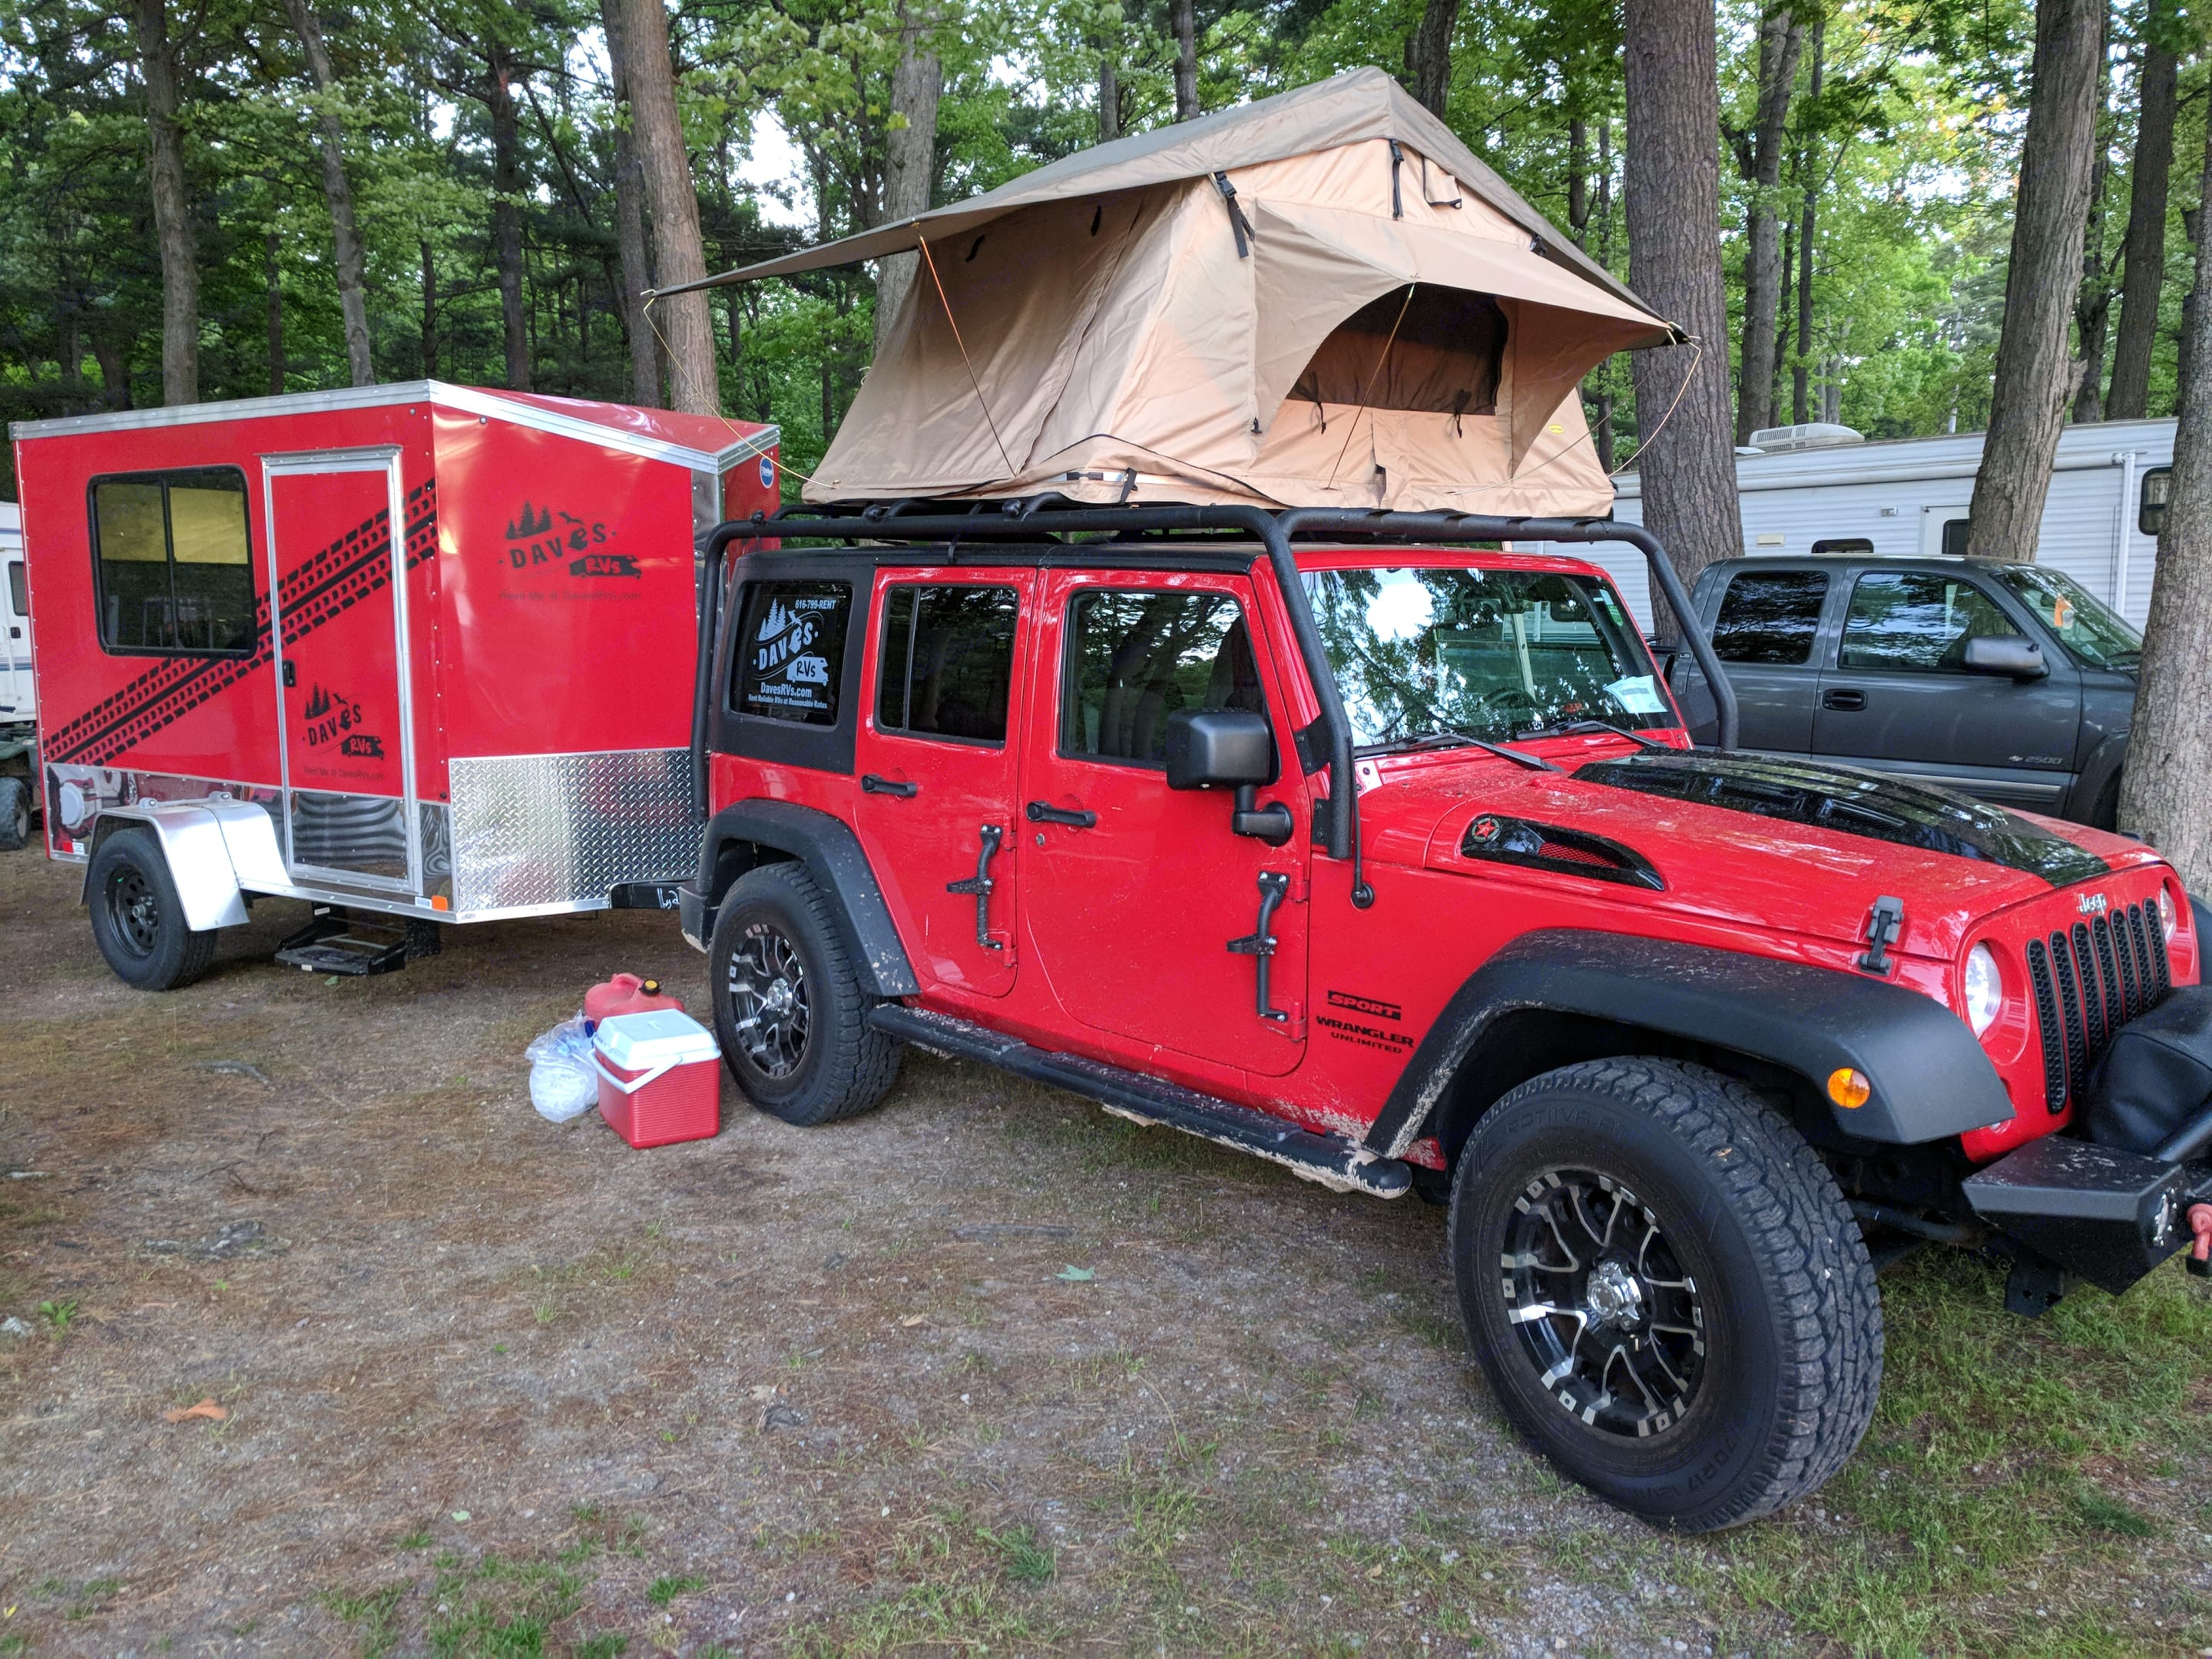 Red with Mobile Man Cave and Roof-top tent options. Jeep Wrangler - Sport 2014